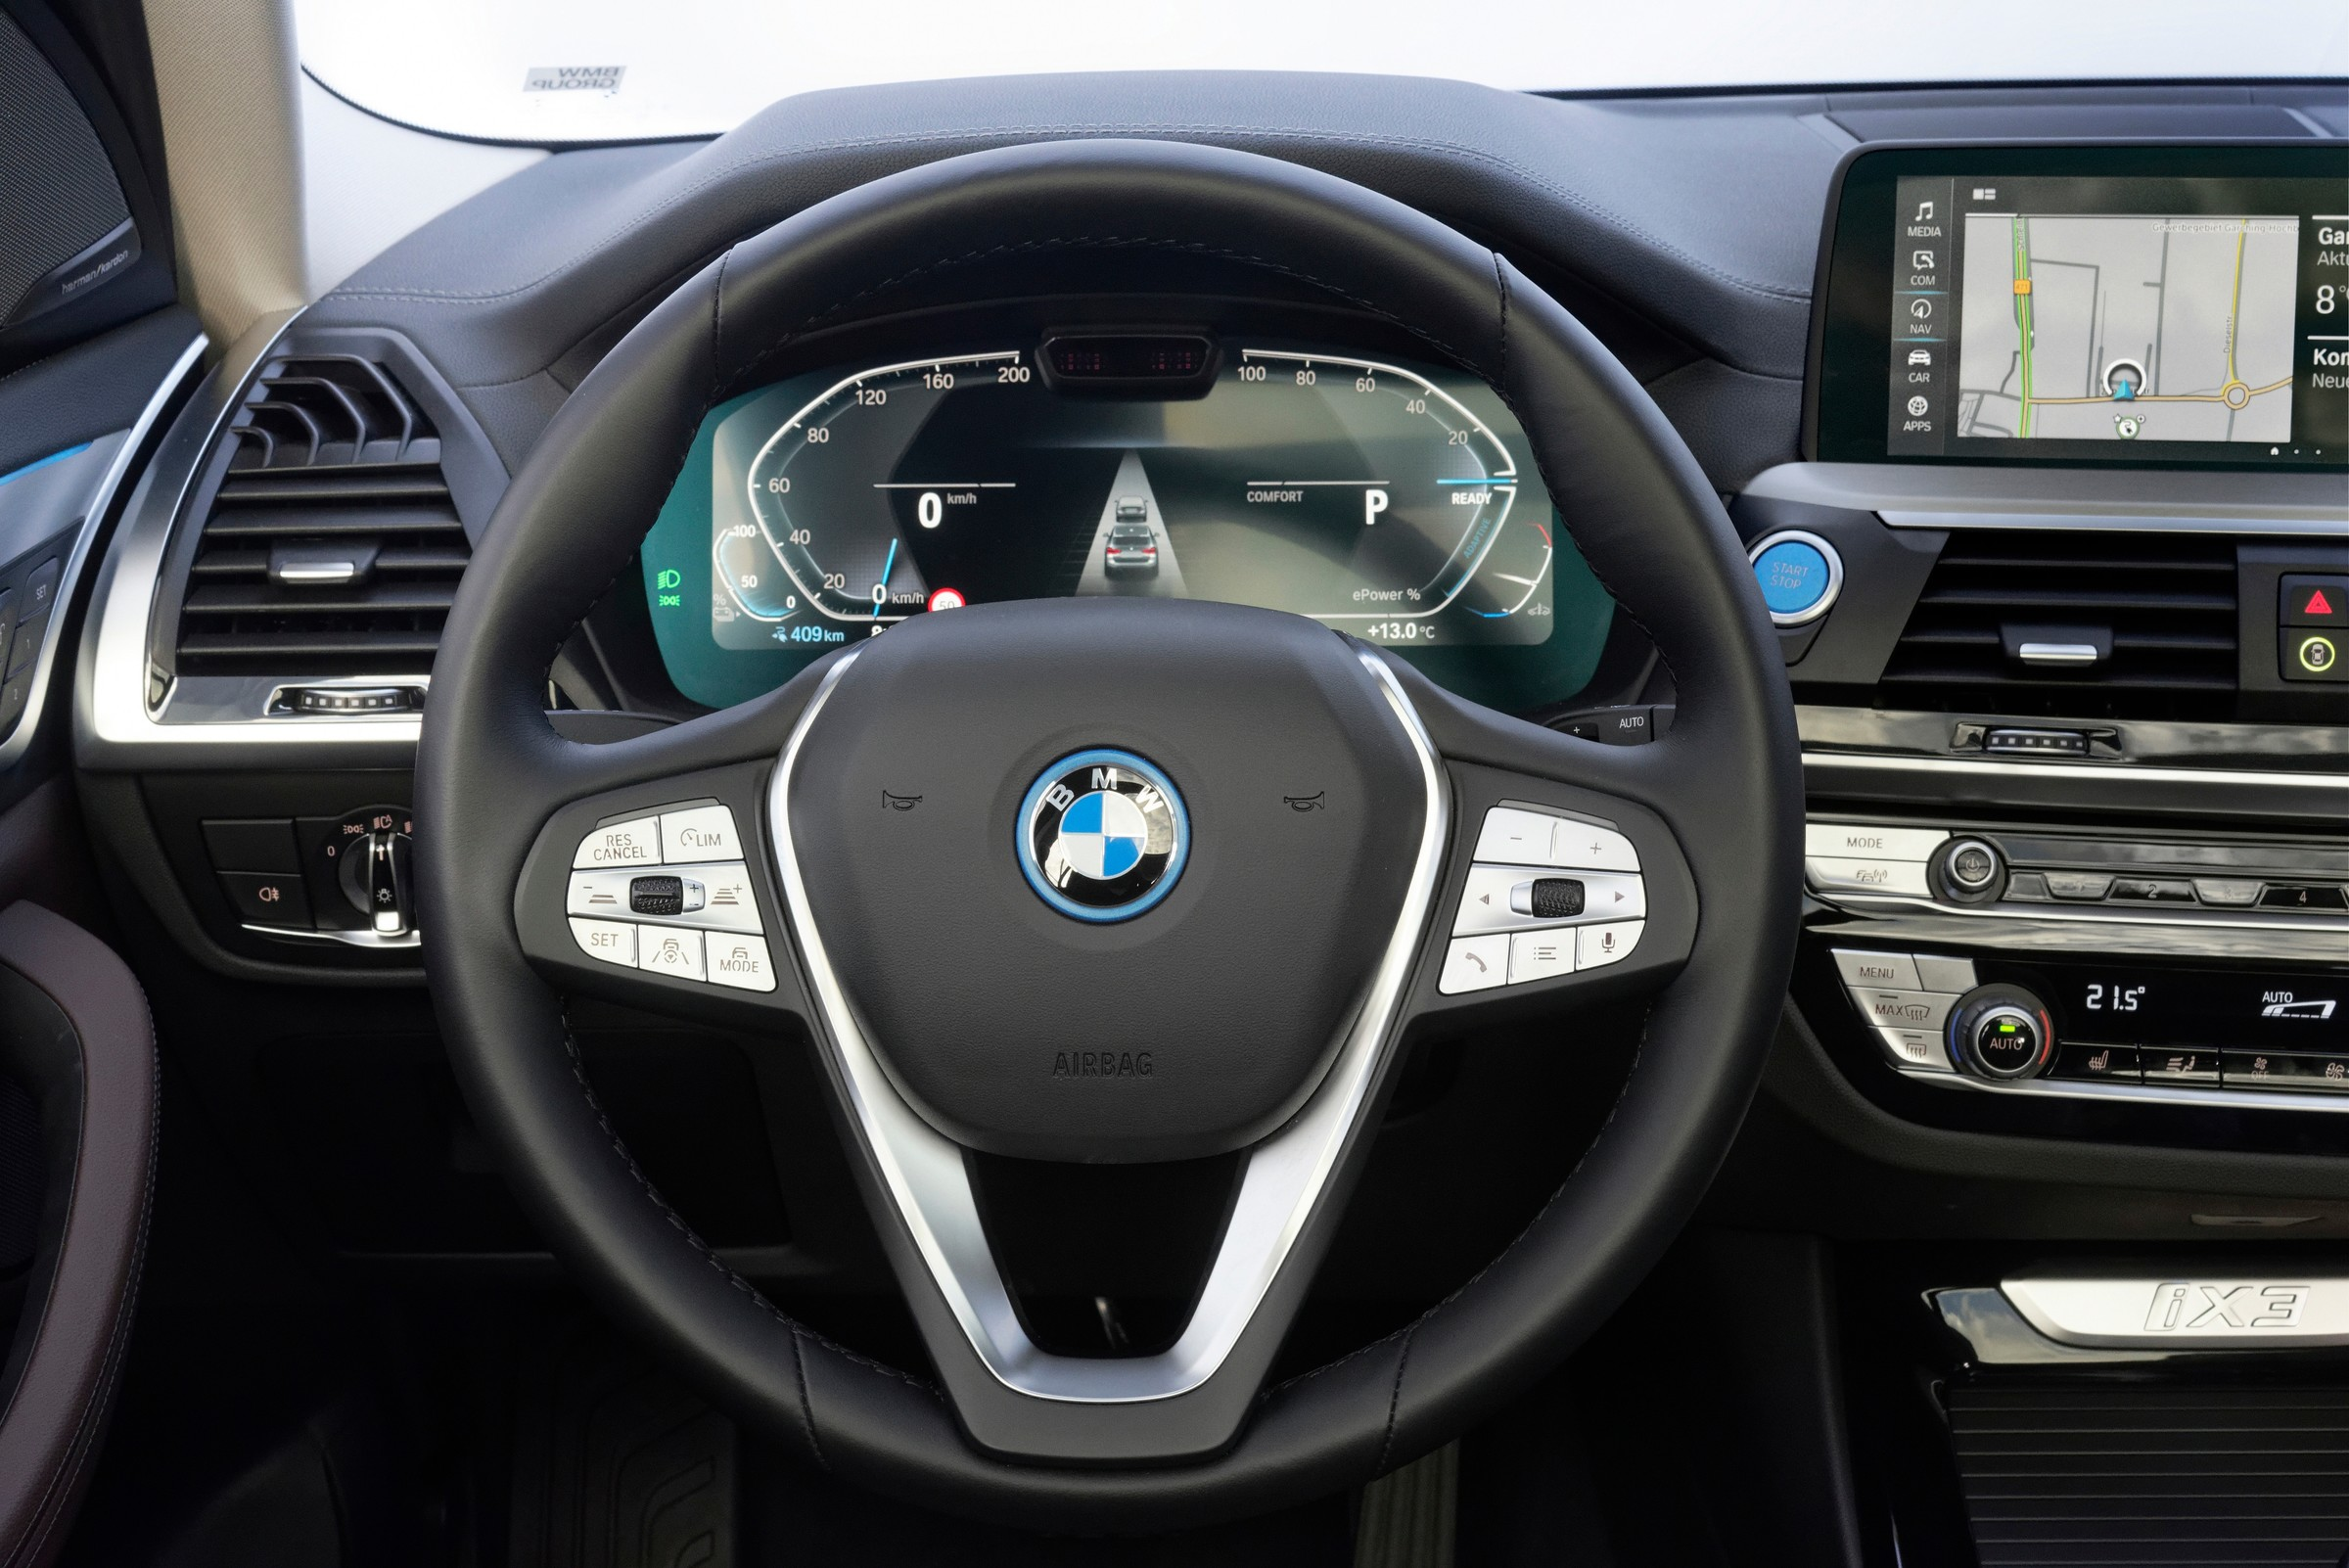 interieur-bmwi.jpeg